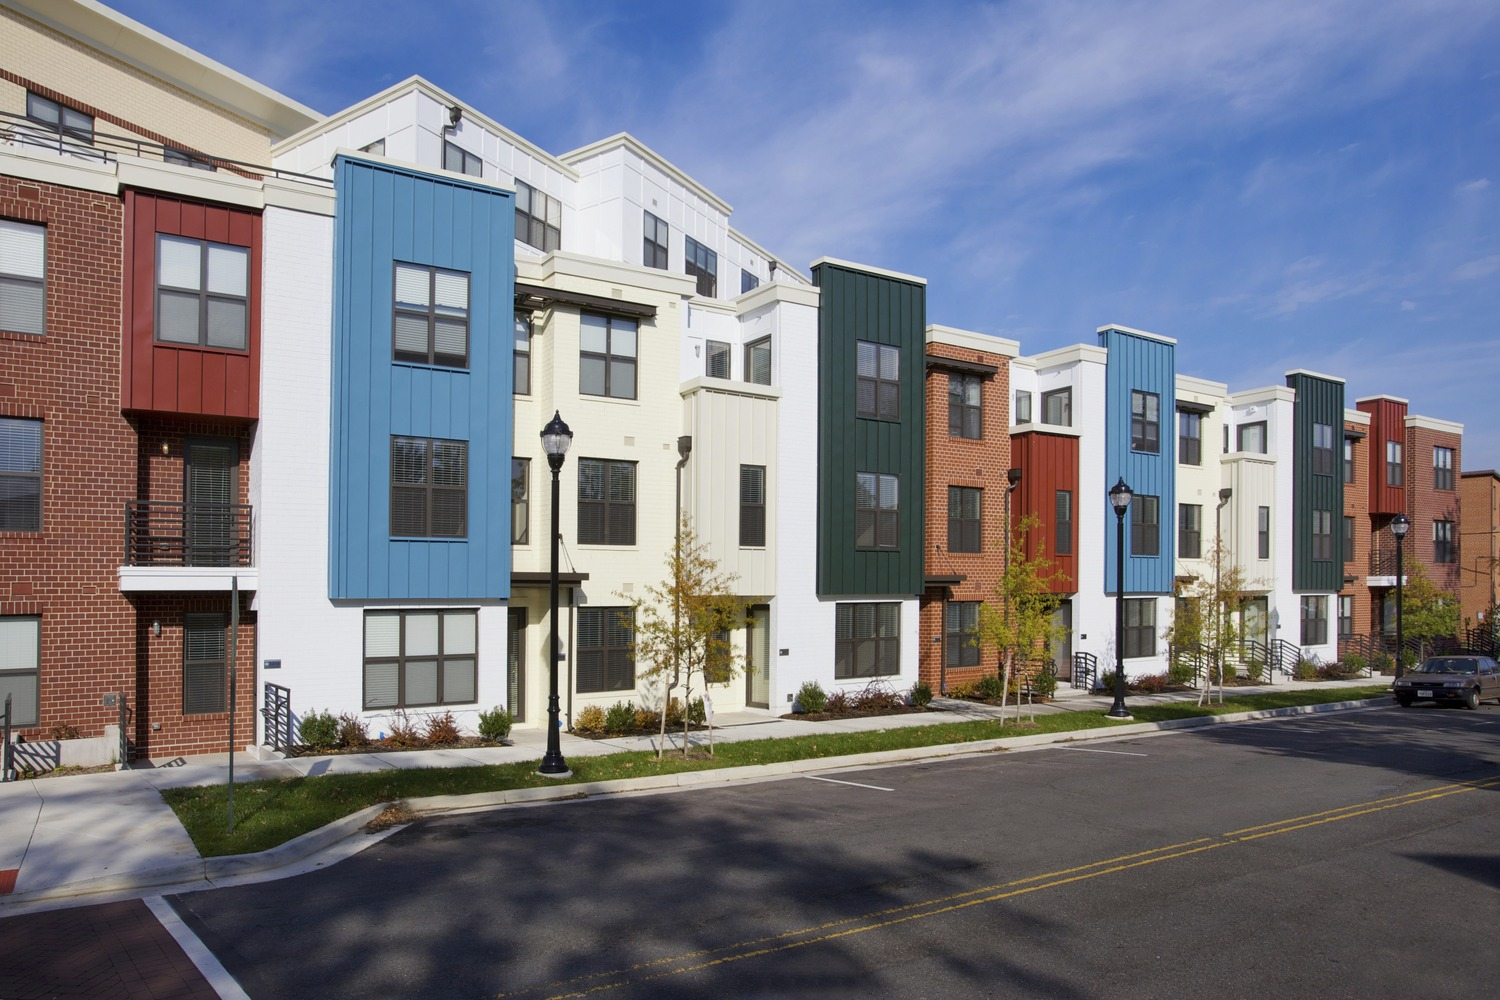 CBG builds Del Ray Central, a 141 Luxury Apartments with Retail Over Two-Level Garage in Alexandria, VA - Image #8